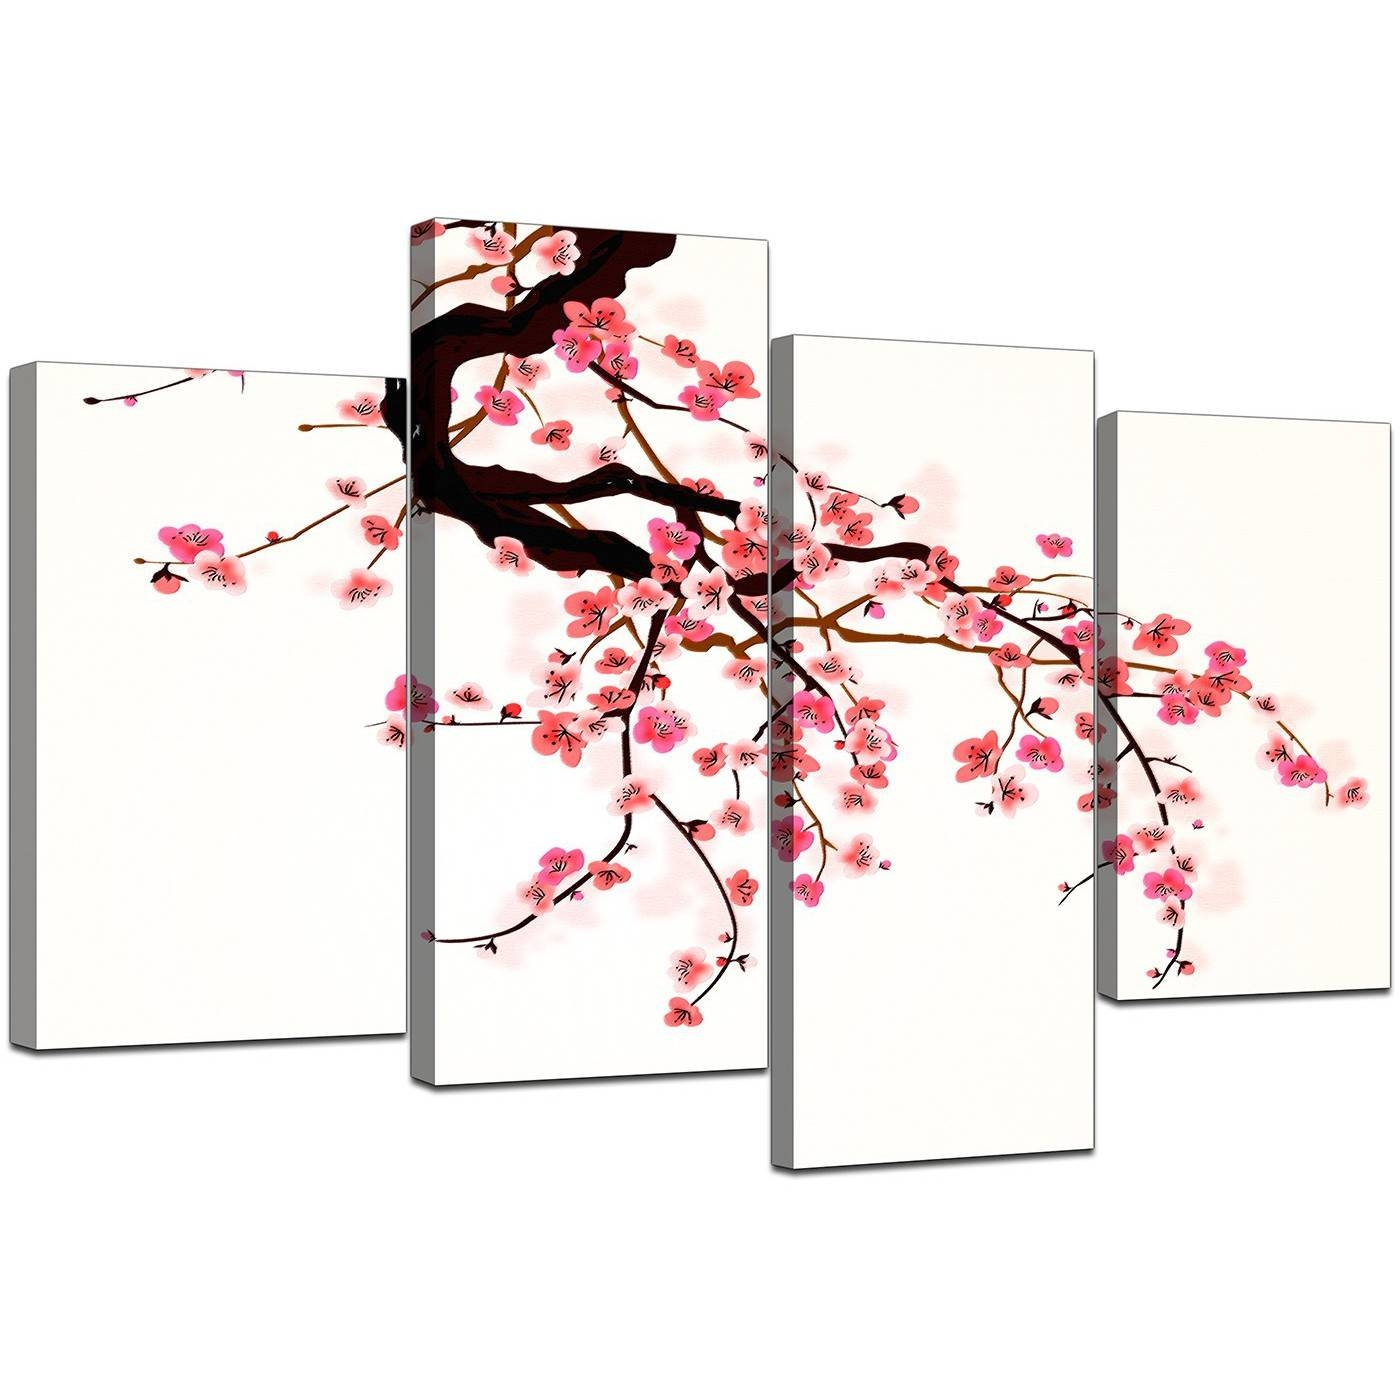 Canvas Prints Uk Of Cherry Blossom For Your Living Room – Set Of 4 Inside 2017 Red Cherry Blossom Wall Art (View 30 of 30)